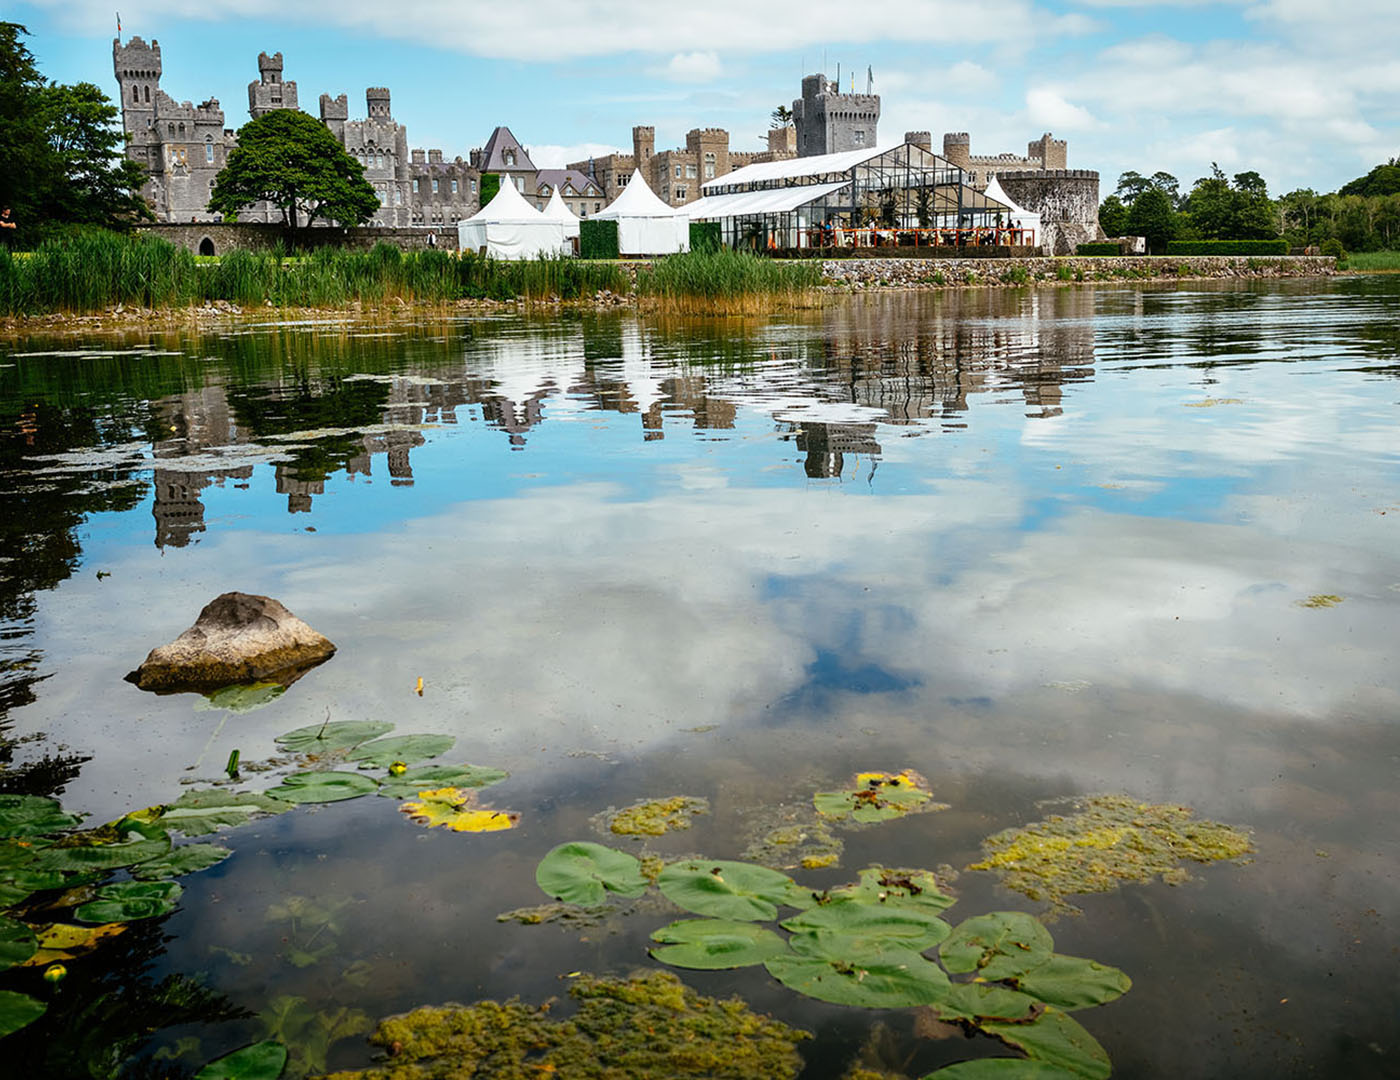 Ashford Castle, Destination Wedding Ireland, Irish Castle weddings, Marquee settings, Private Parties, Event Management Company, Luxury event planners